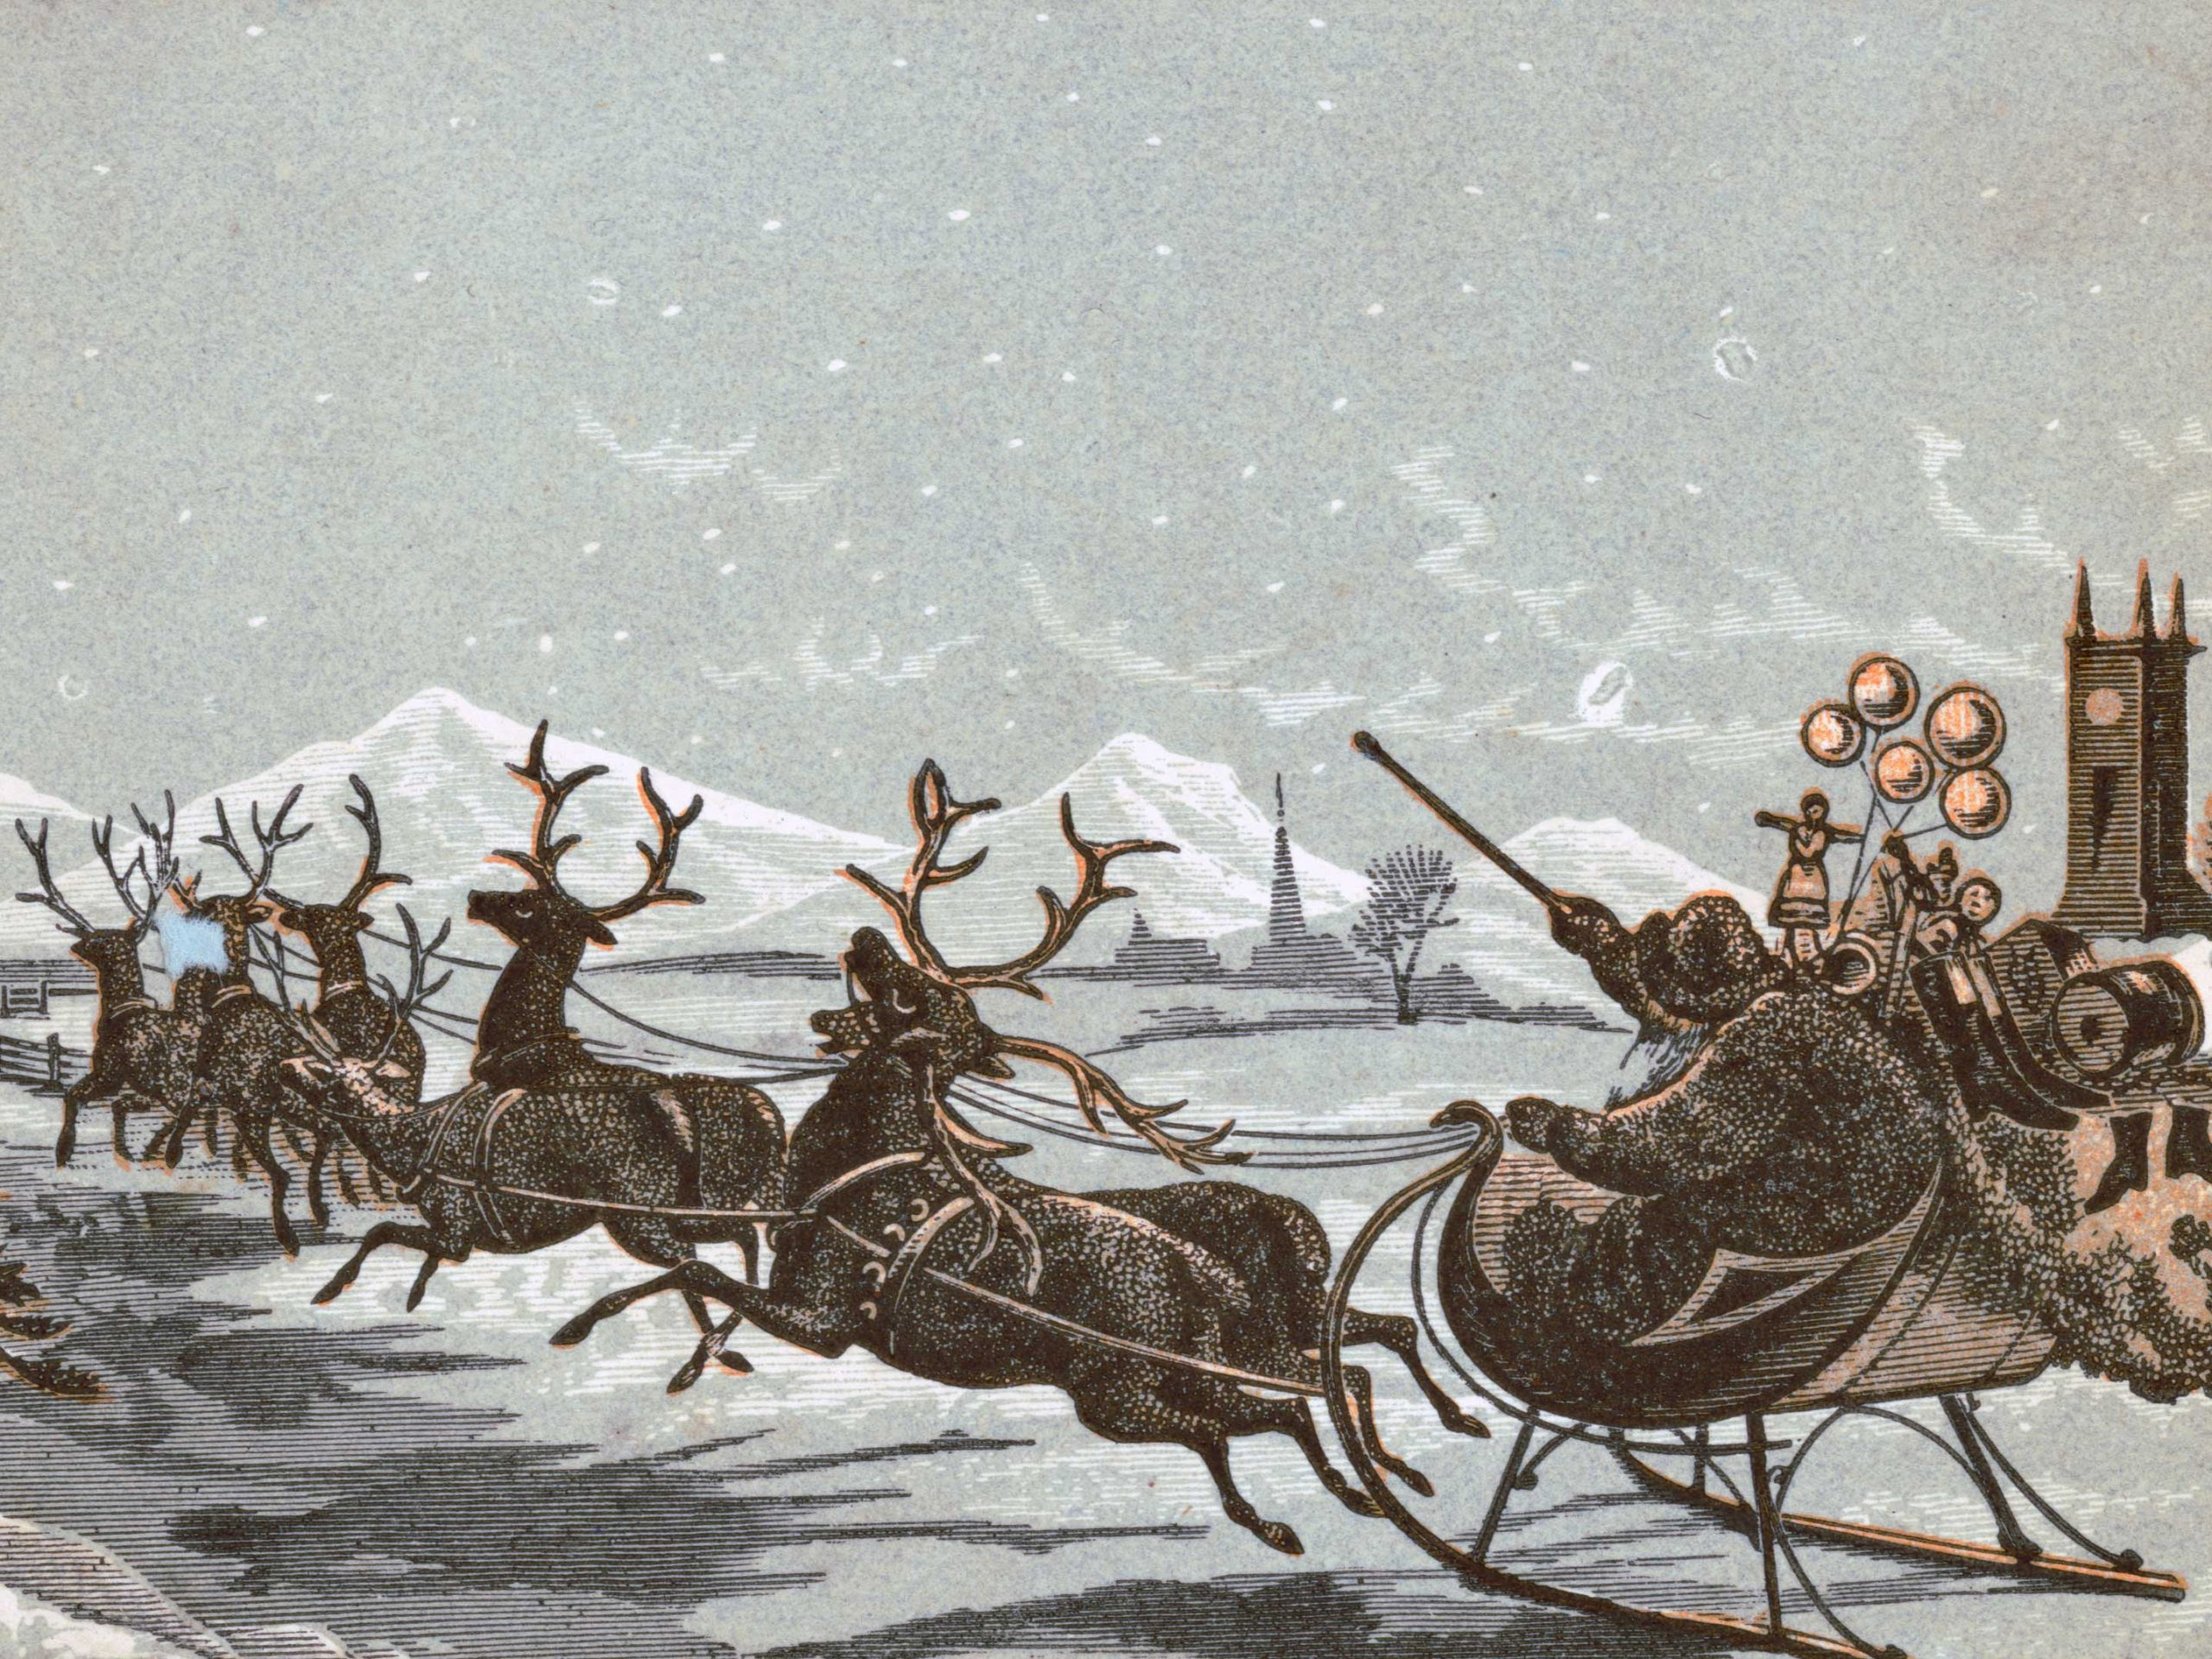 Santa Claus and his reindeer.   Library of Congress - cc pdm.